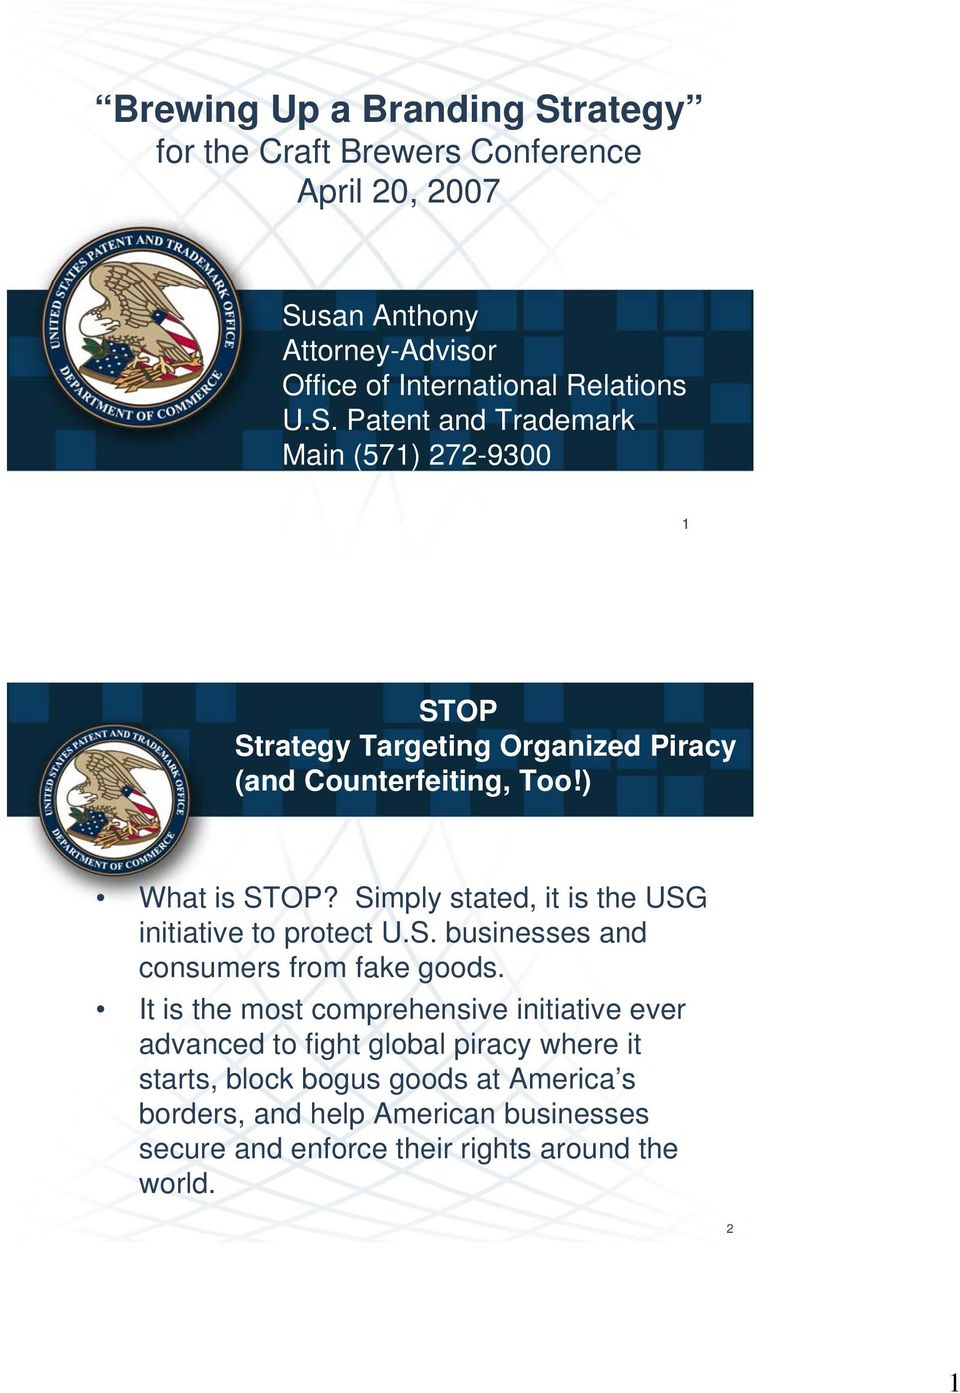 Simply stated, it is the USG initiative to protect U.S. businesses and consumers from fake goods.